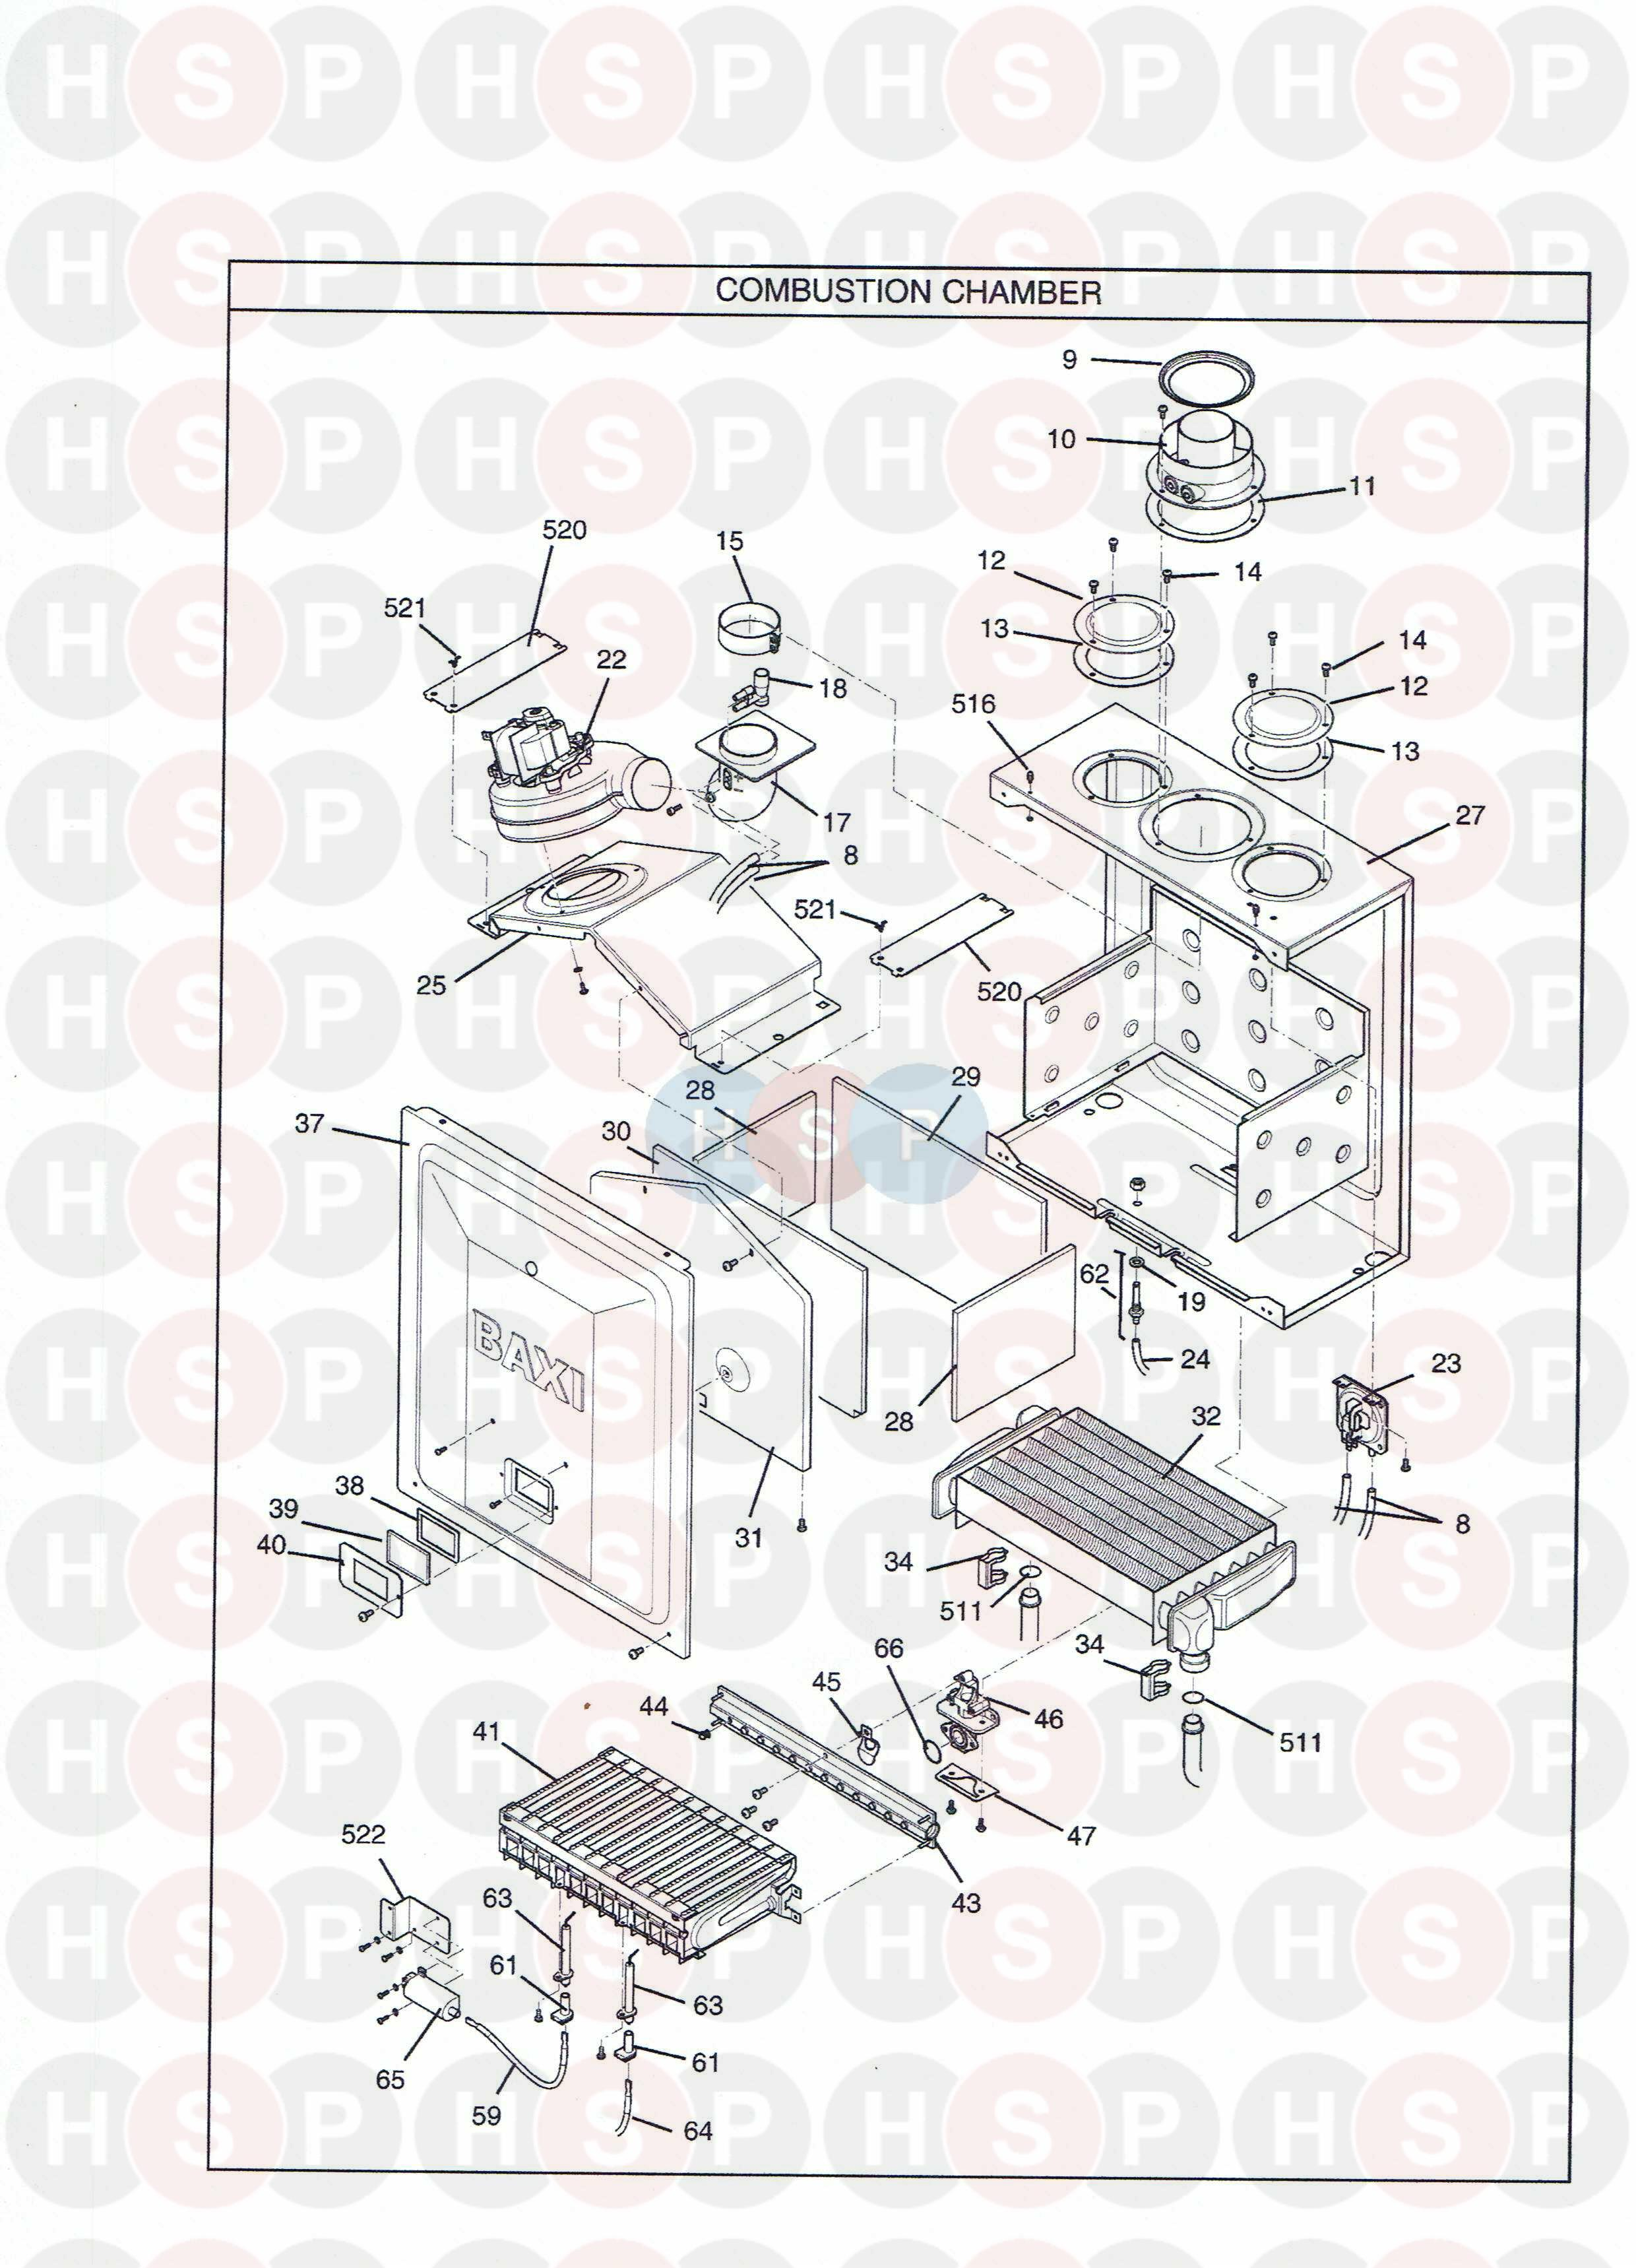 Potterton PERFORMA 28 Appliance Diagram (Combustion Box